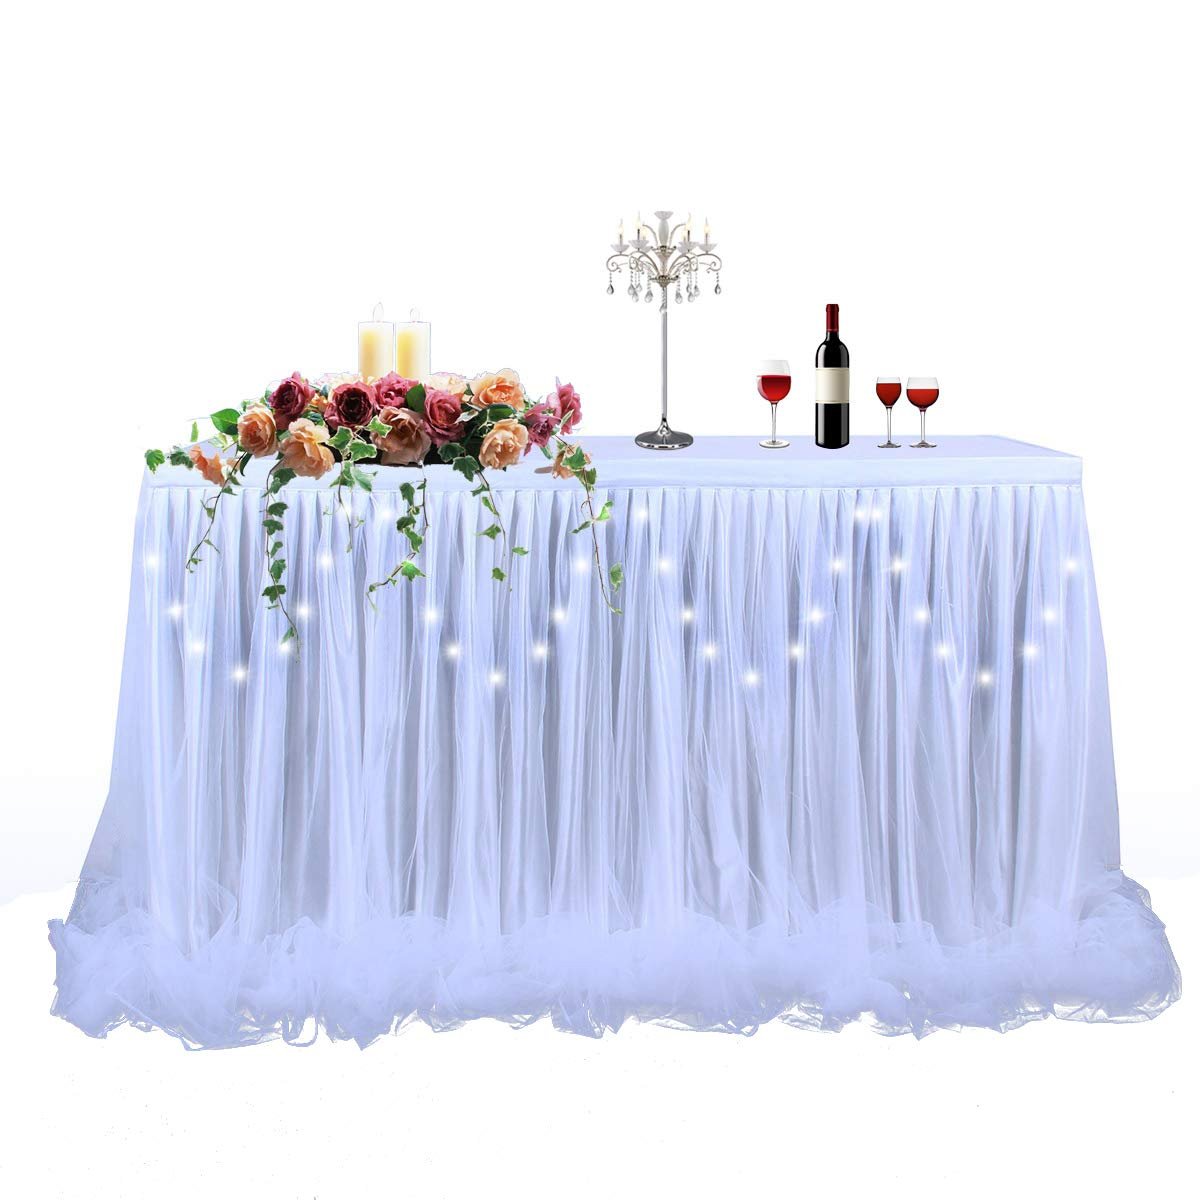 LED Table Skirt 9ft White Tulle Table Skirt Tutu Table Skirting for Rectangle or Round Table for Baby Shower Wedding and Birthday Party Decoration (L9(ft)*H 30in)